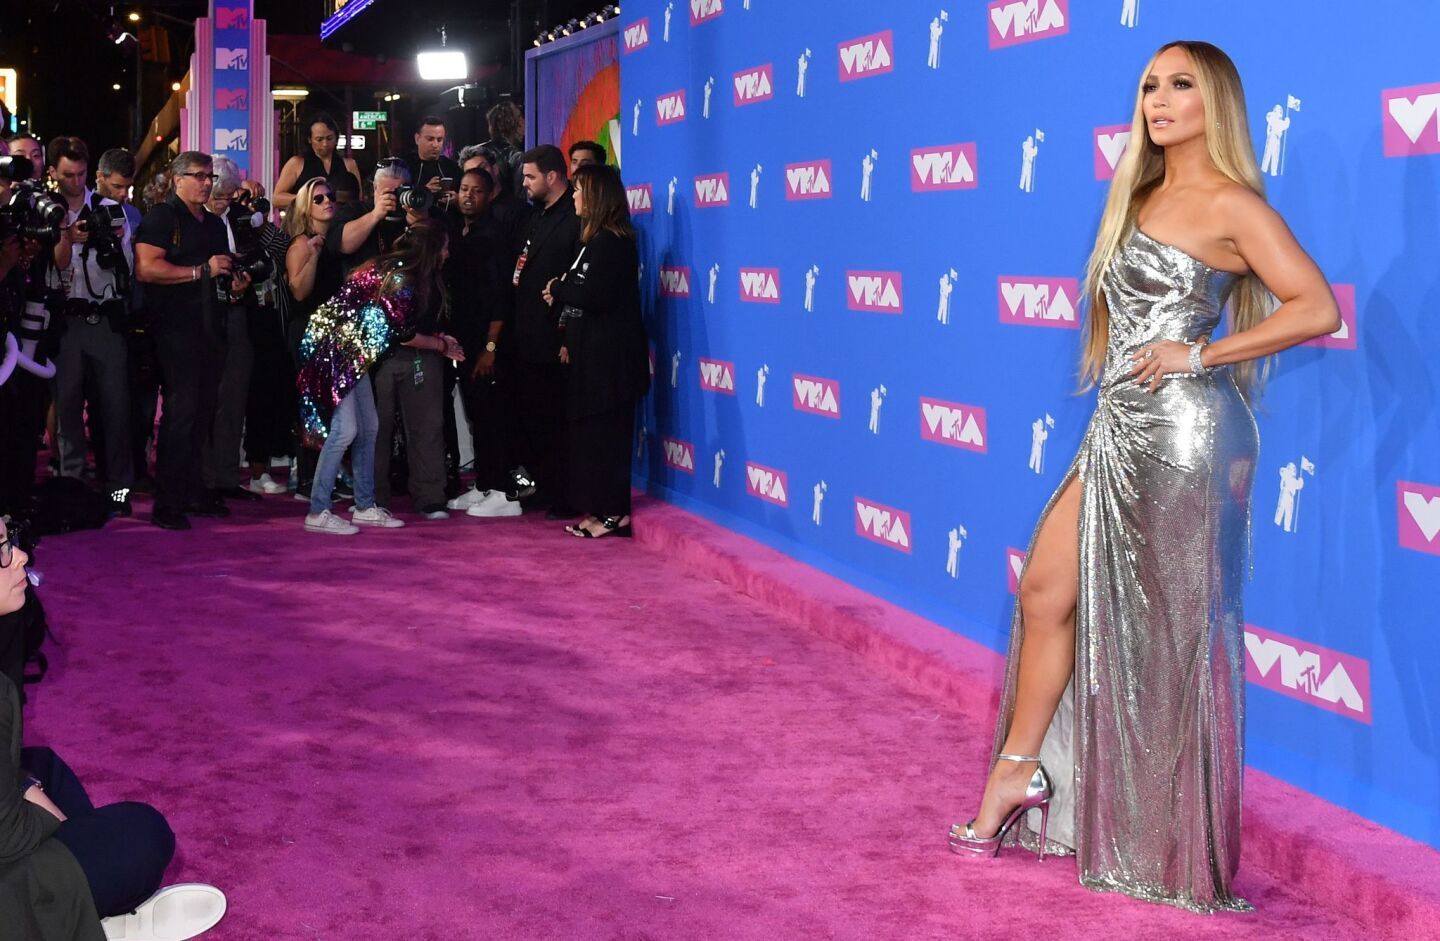 US singer Jennifer Lopez attends the 2018 MTV Video Music Awards at Radio City Music Hall on August 20, 2018 in New York City.